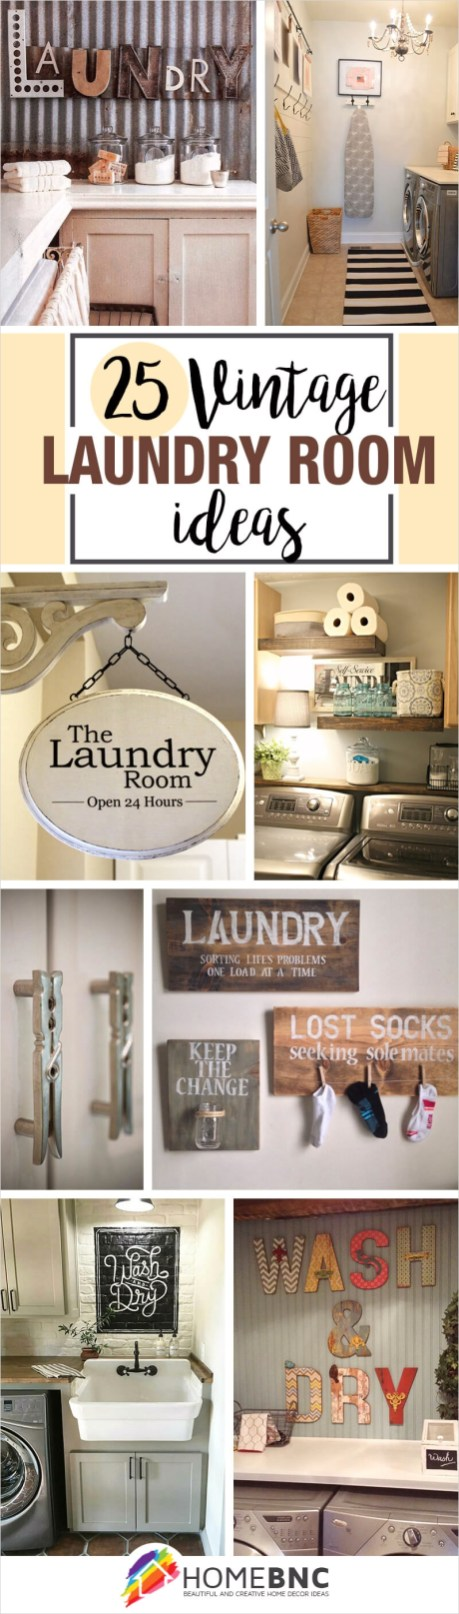 Laundry Room Wall Art Decor Layout 84 25 Best Vintage Laundry Room Decor Ideas and Designs for 2017 5